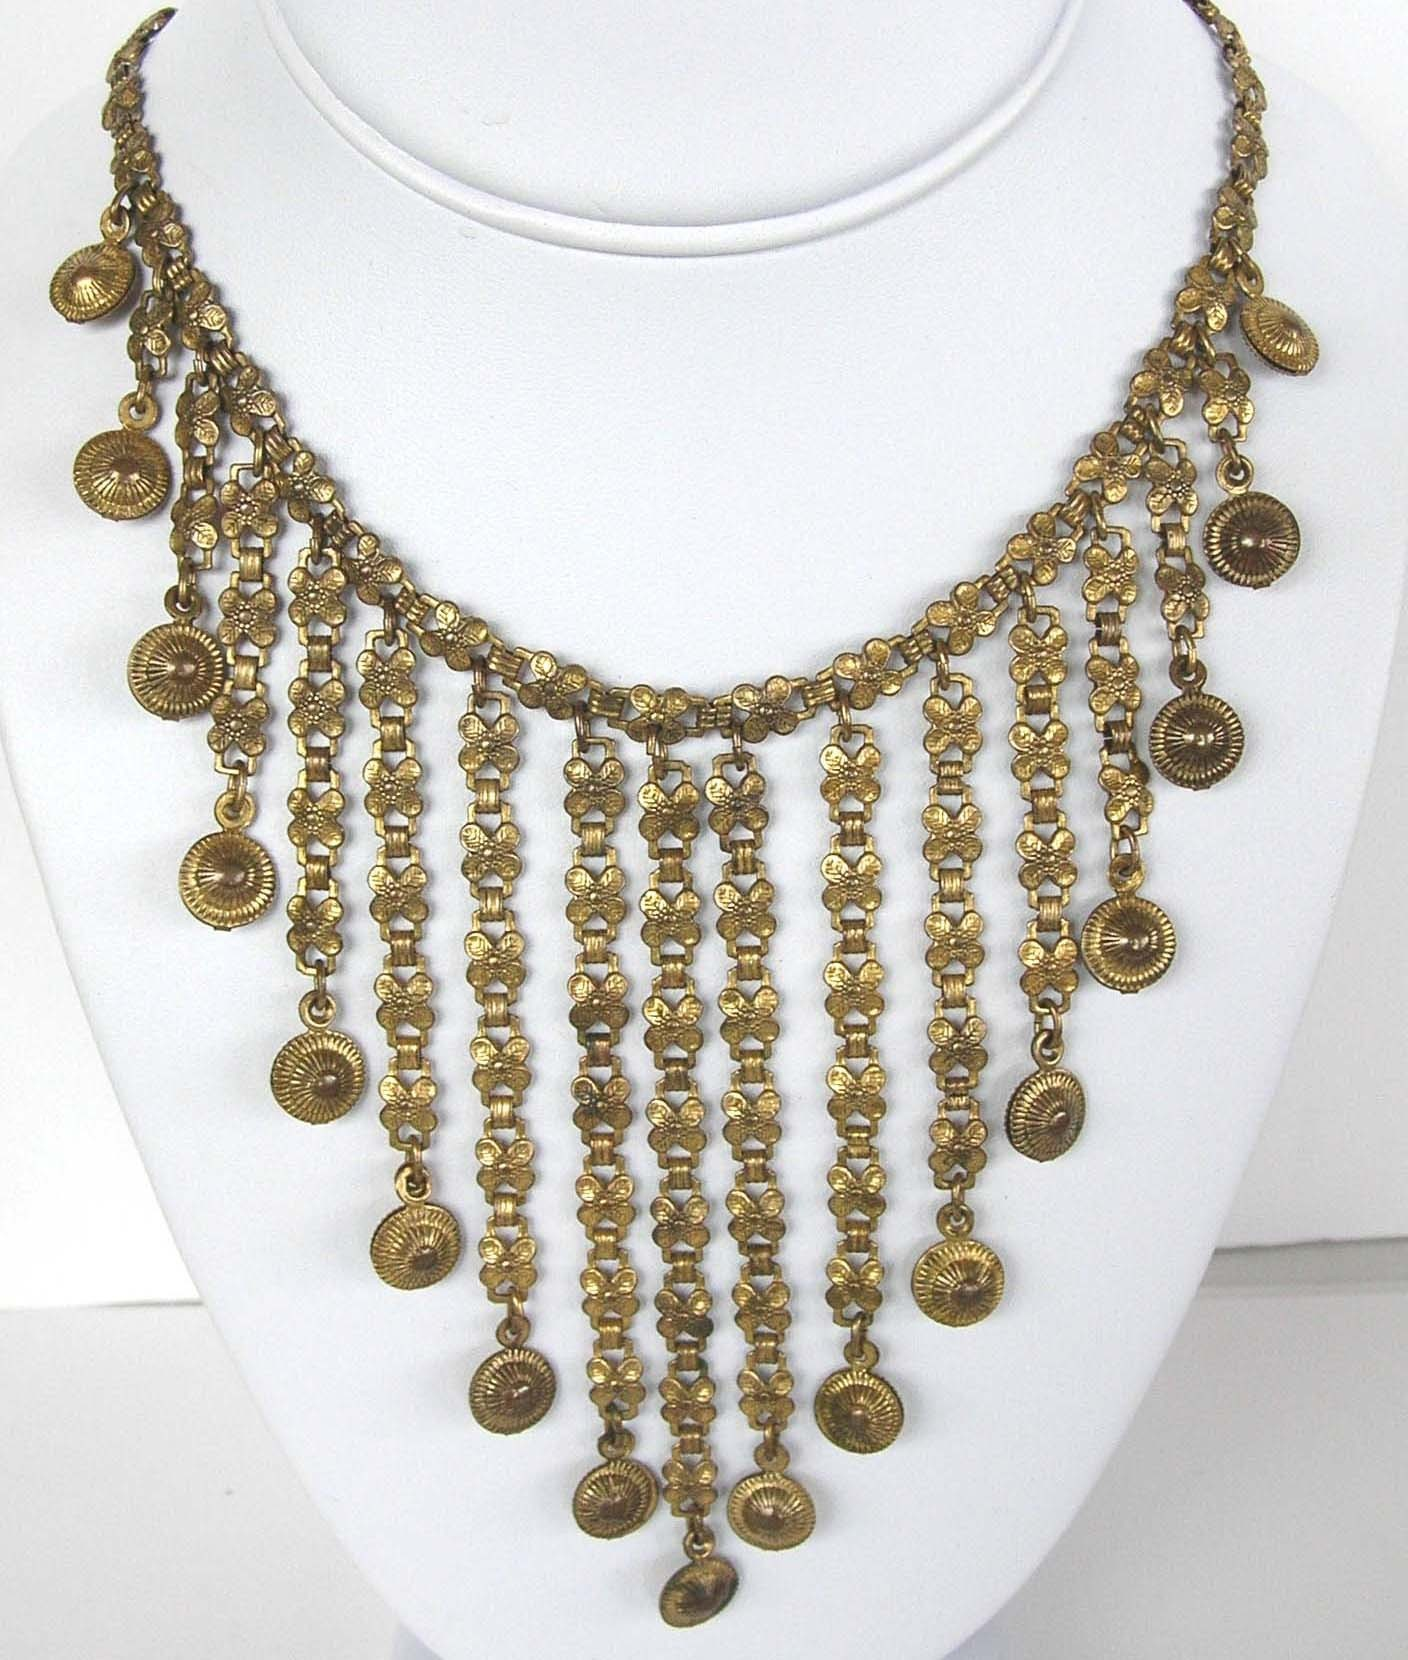 Vintage Etruscan Revival bib necklace, circa 1920-1930s